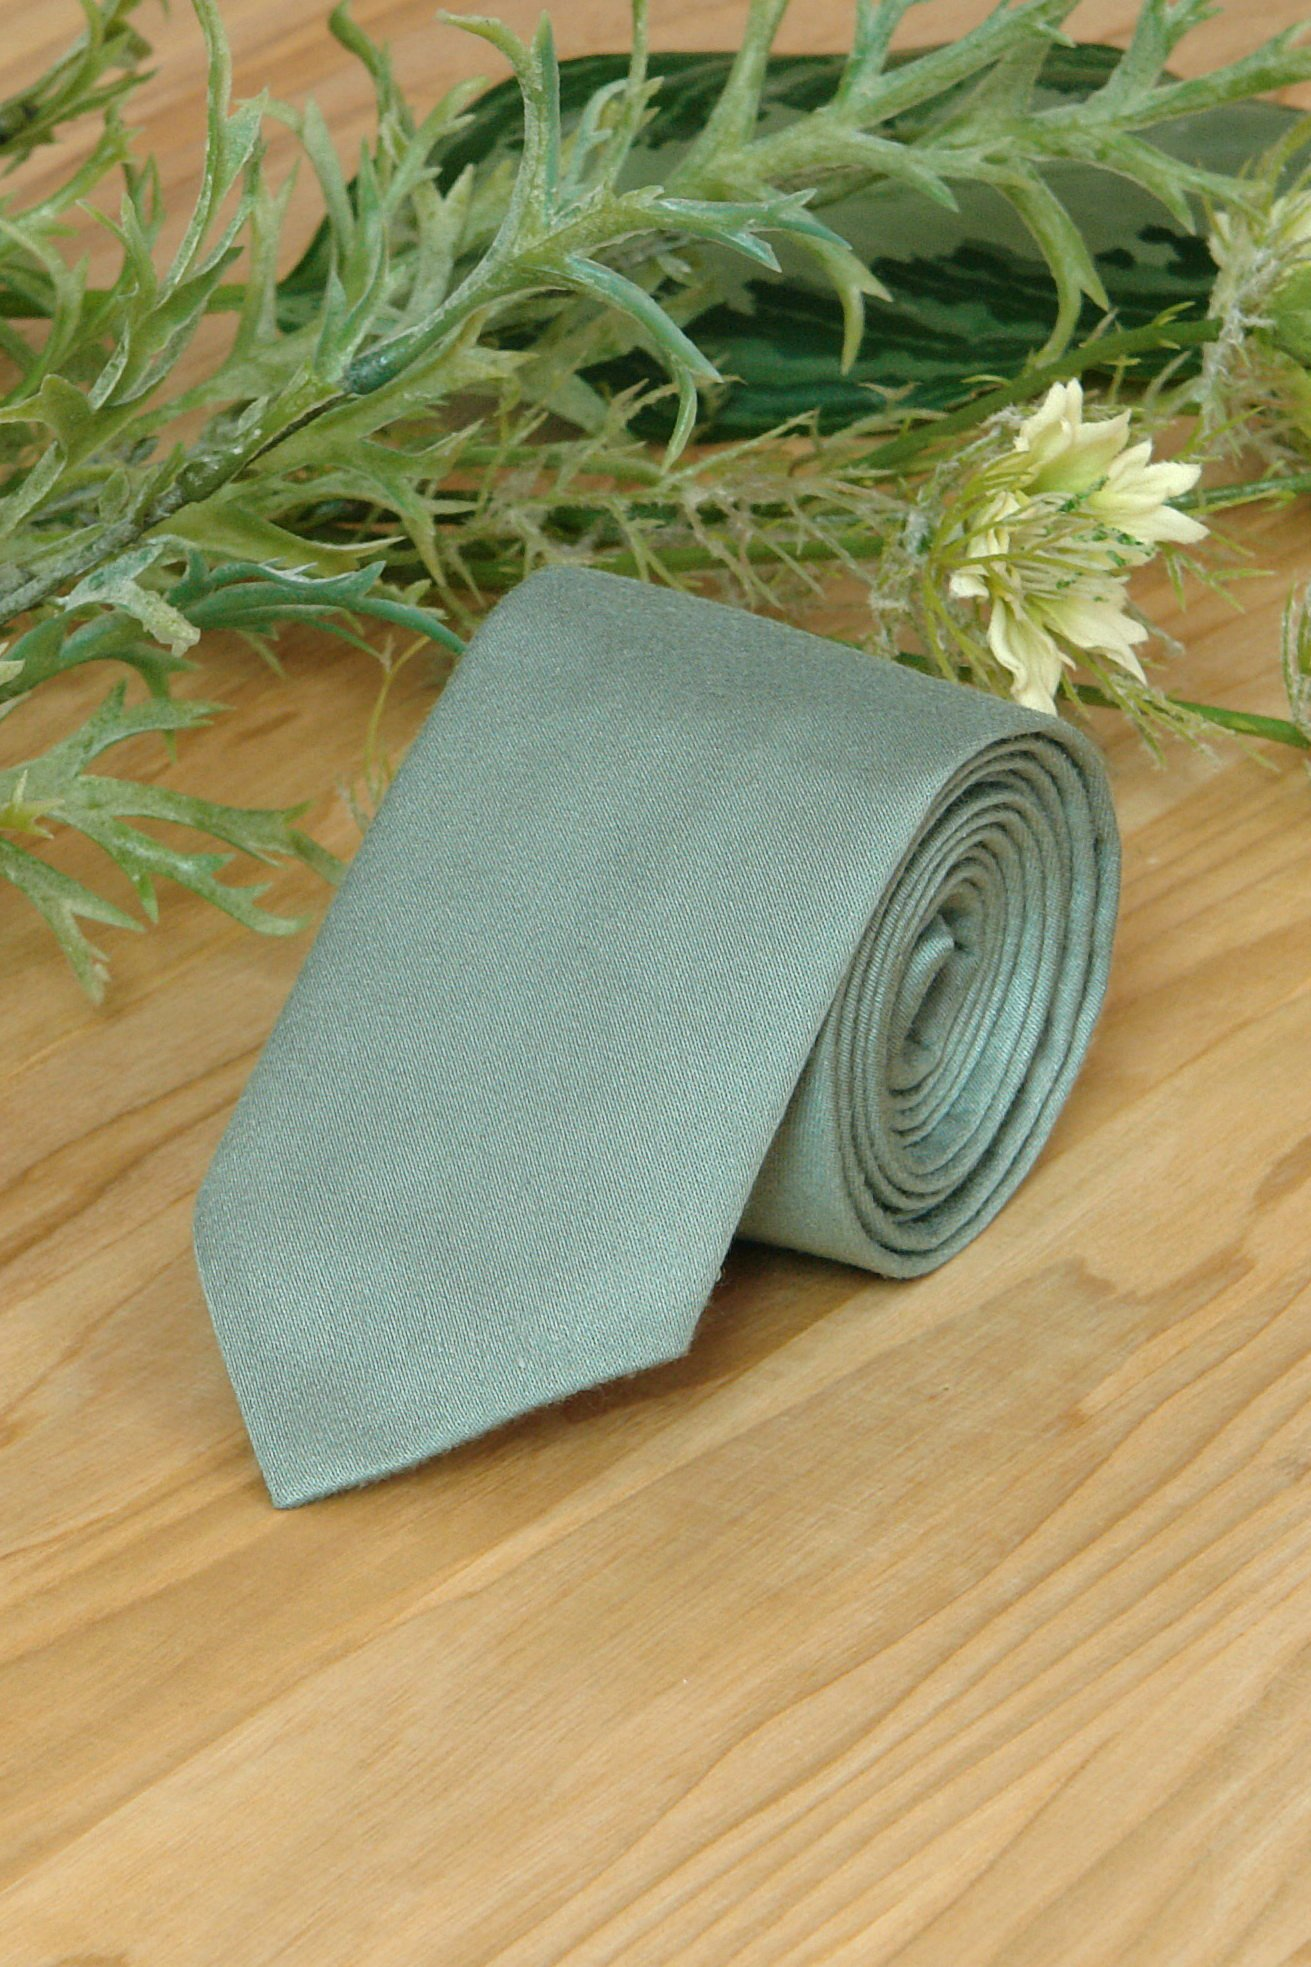 Pale Jade Green Tie WEDDING COLOR 2019 Sage Green Wedding Ties Galapagos Green Necktie Pocket square Granite Green Bow Tie.jpg